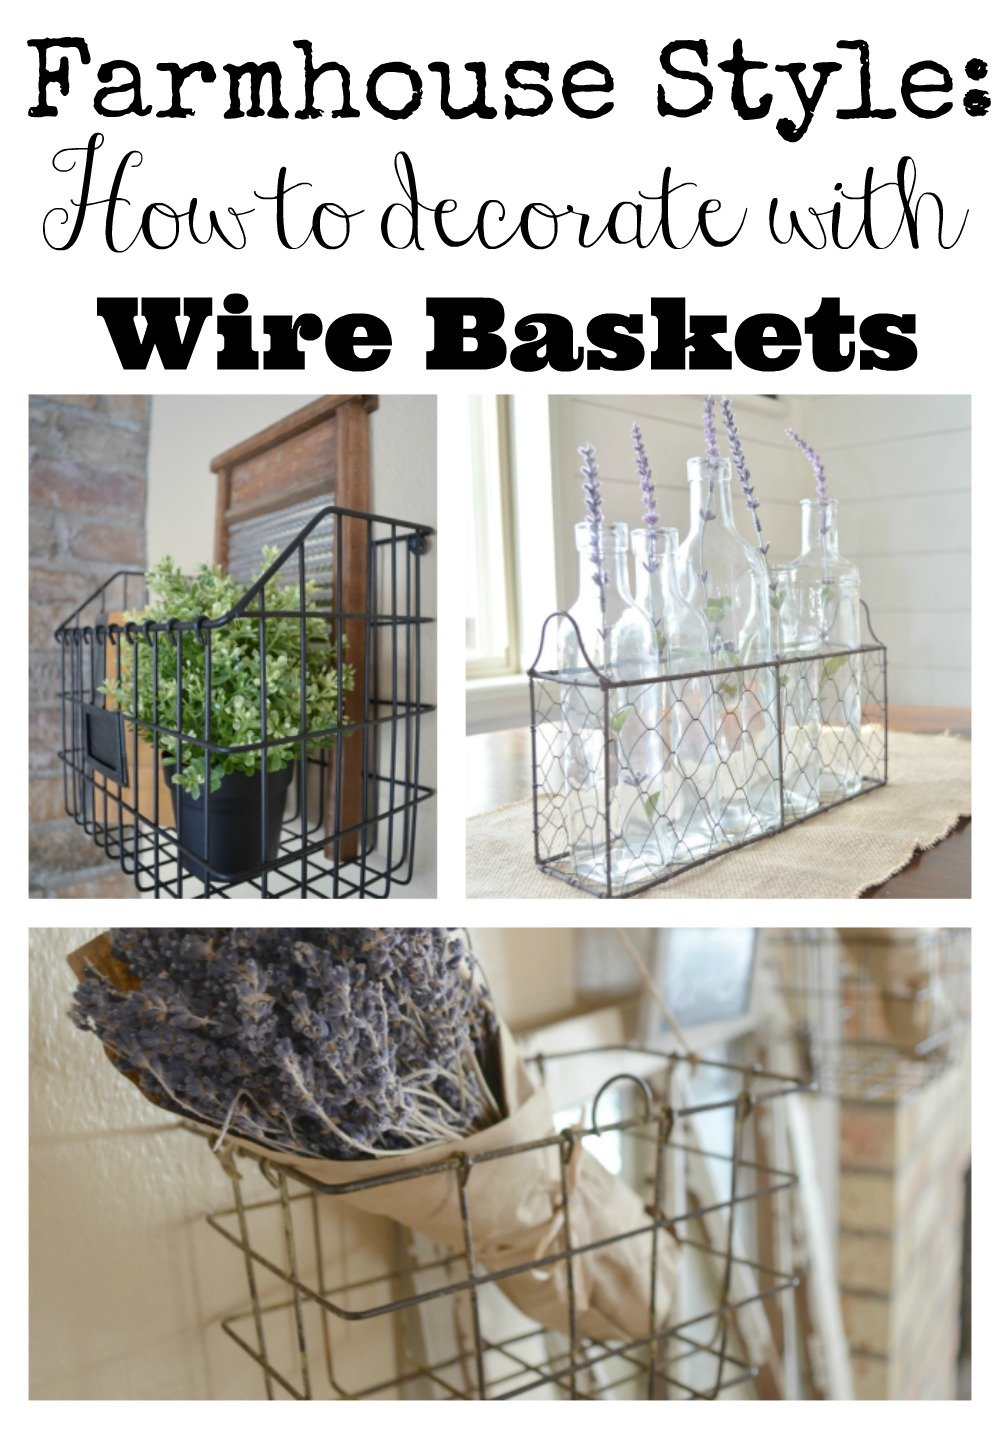 Farmhouse Style: How to Decorate with Wire Baskets